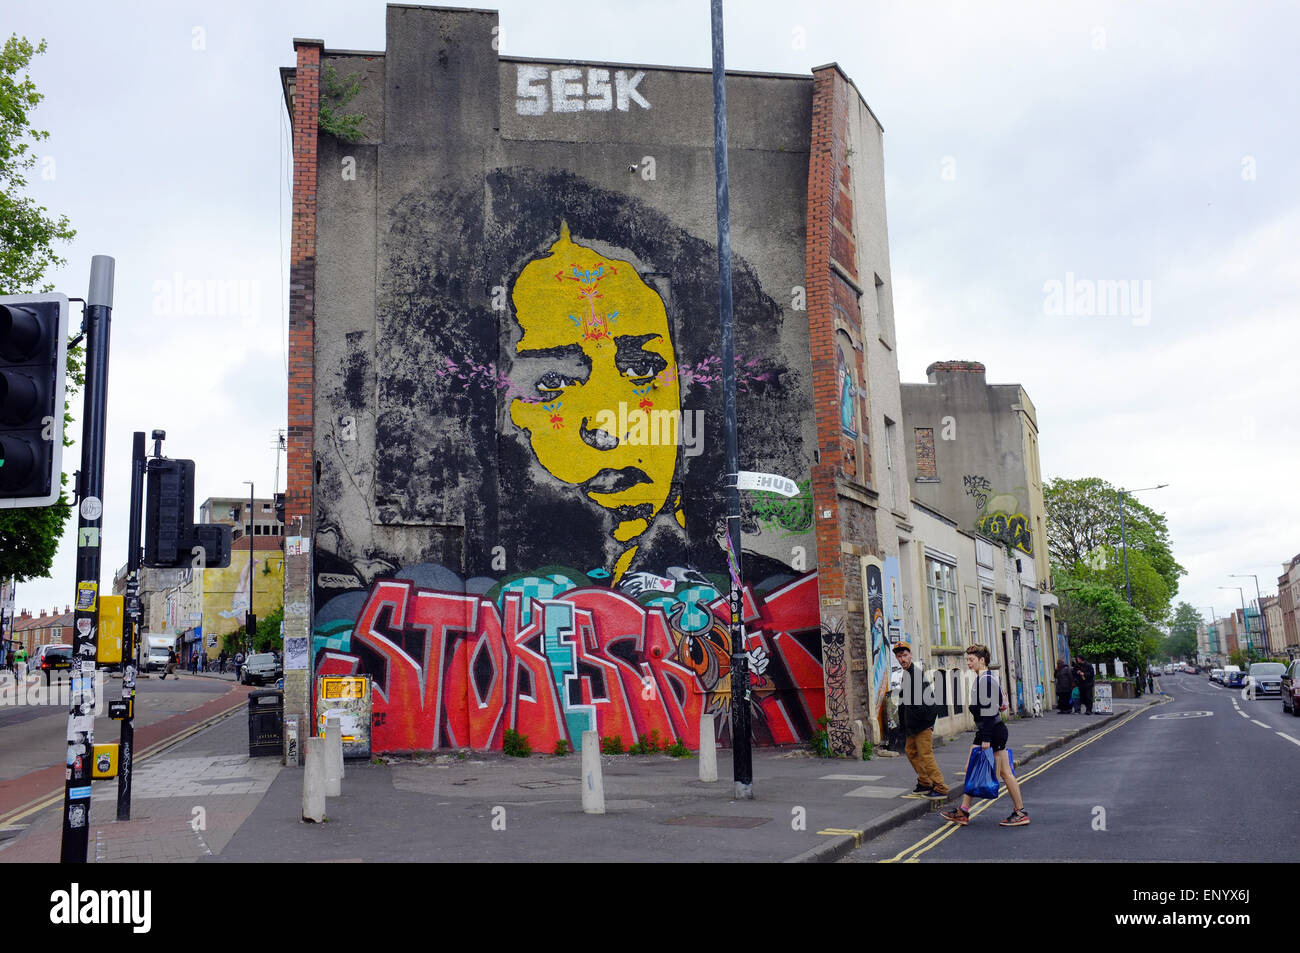 A wall painting in Stokes Croft in Bristol. - Stock Image